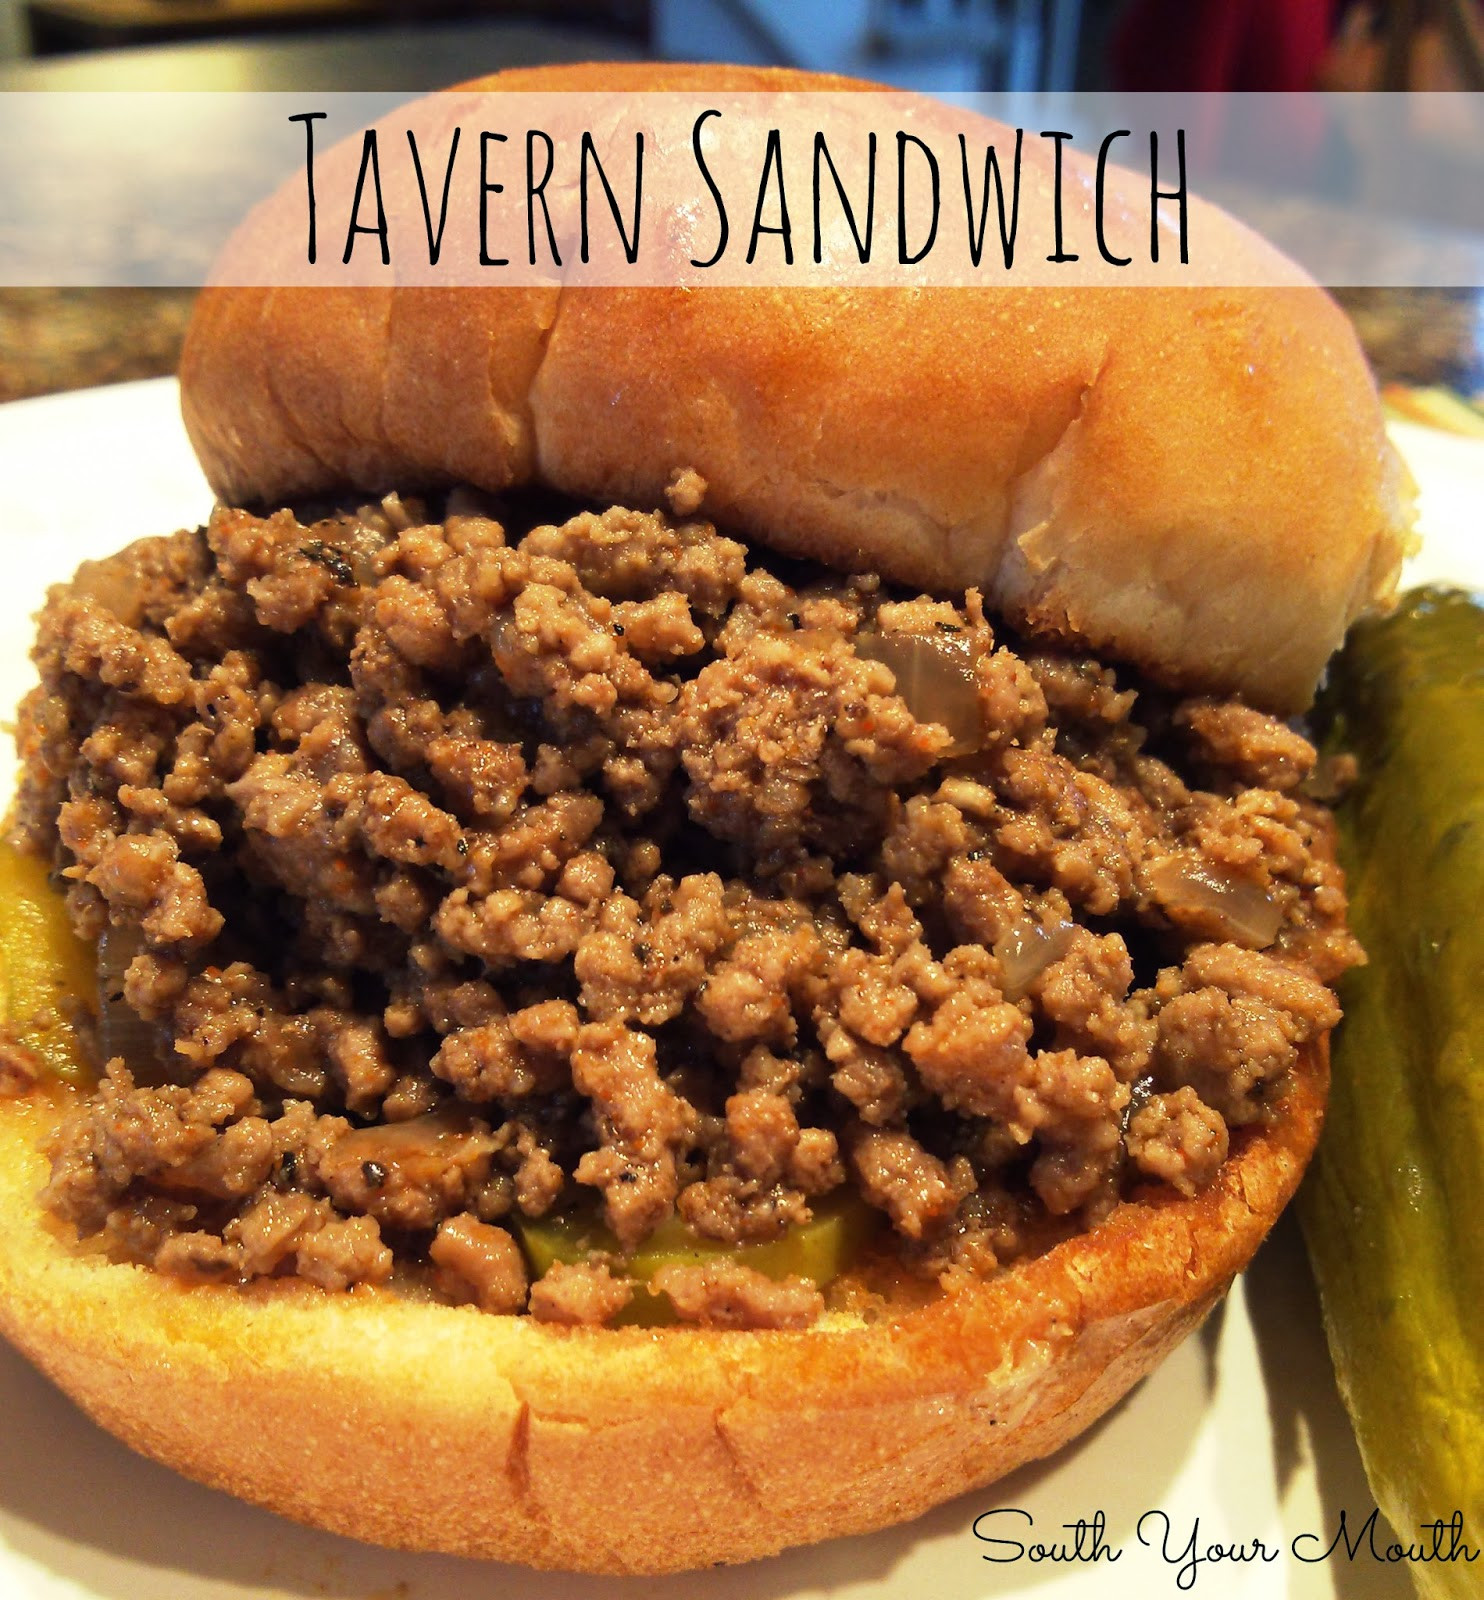 Ground Beef Sandwich  South Your Mouth Tavern Sandwich or Loose Meat Sandwich